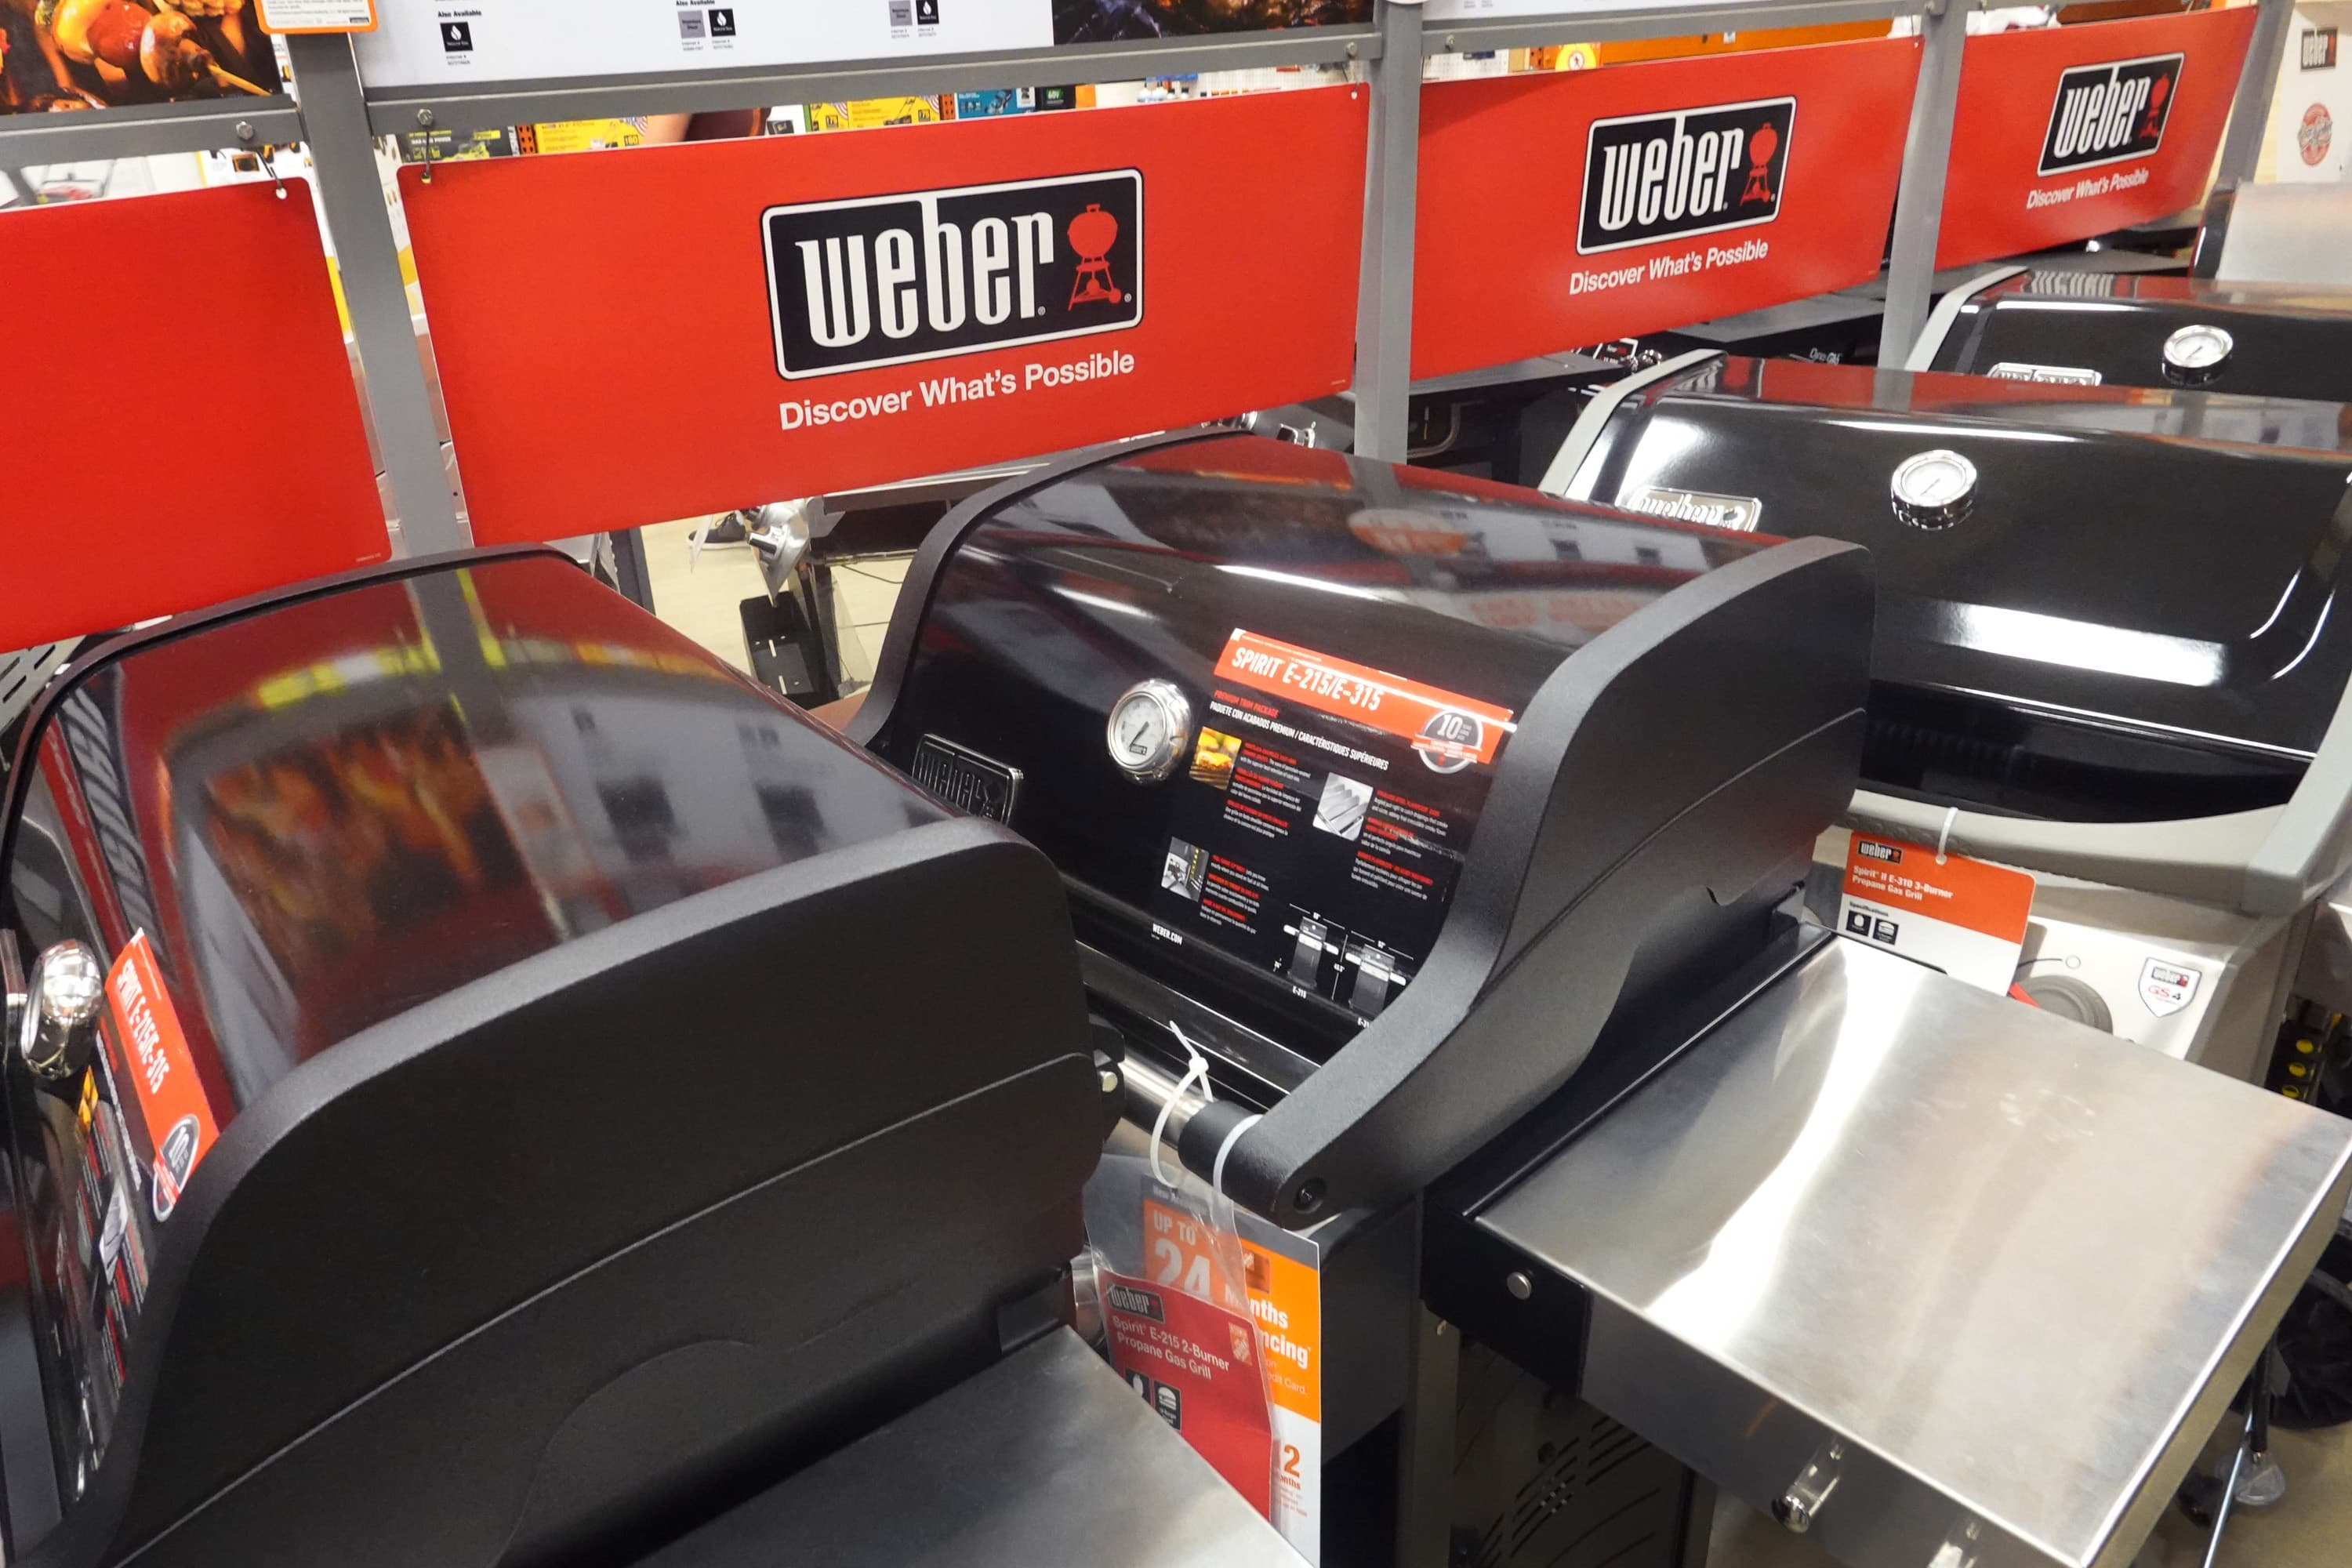 Weber Grills has plans to launch a new line, CEO Chris Scherzinger told CNBC on Thursday ahead of the company's public listing Aug. 5.